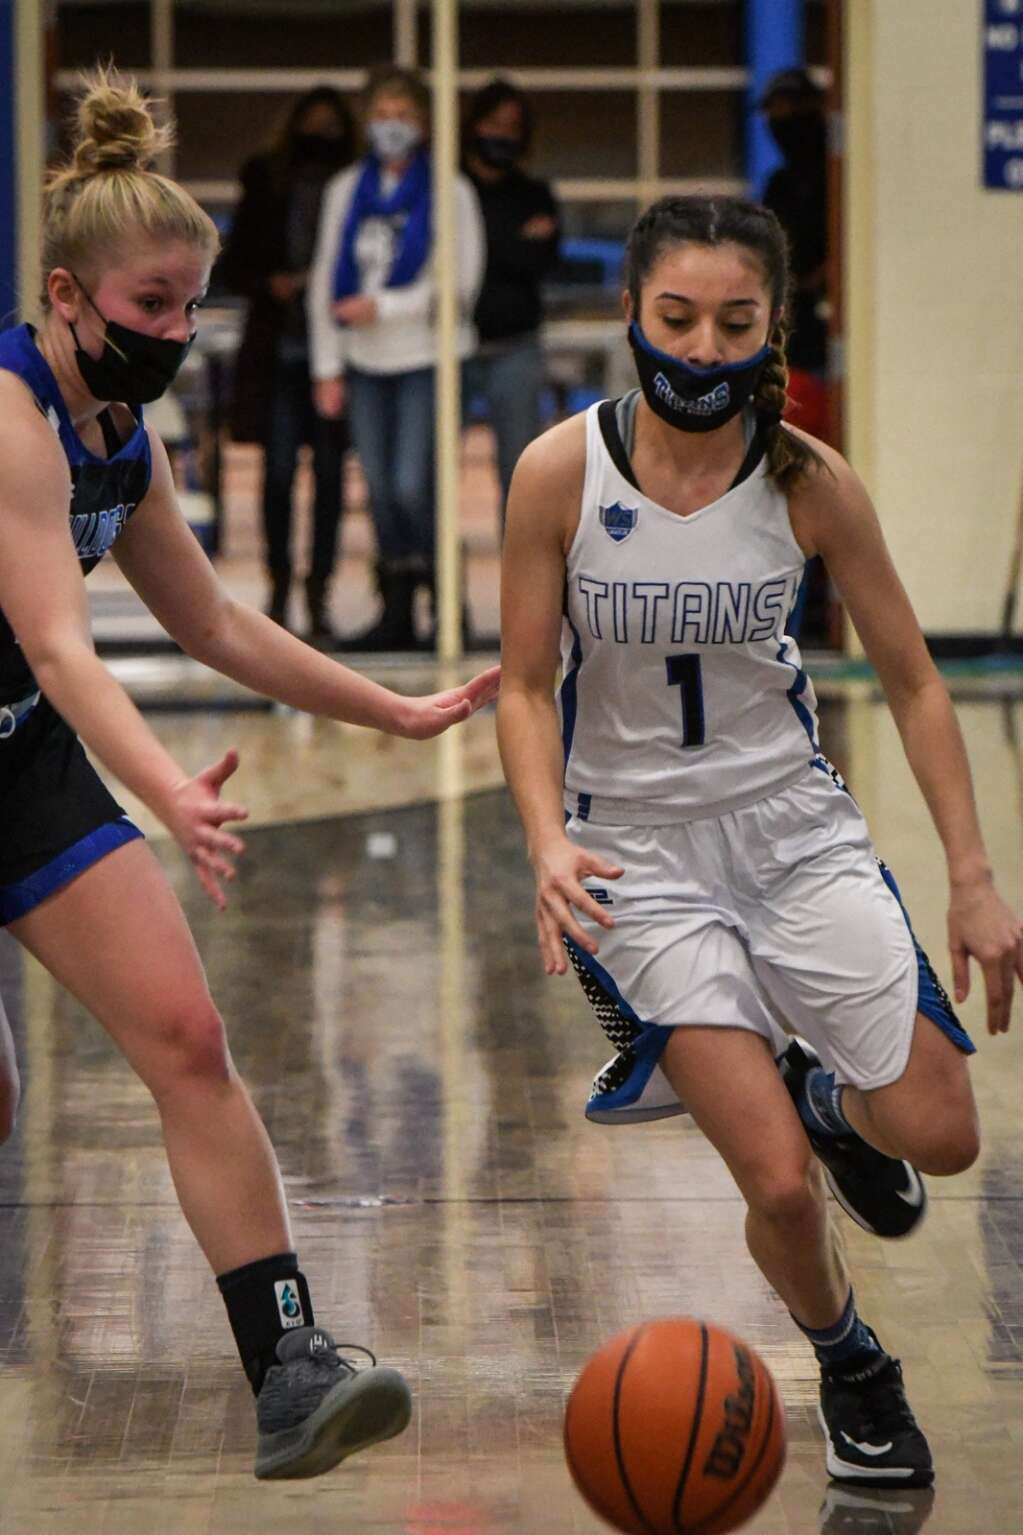 Coal Ridge Titan Jackie Camunez dribbles the ball past the defending Moffat County Bulldog during Tuesday night's game at Coal Ridge High School. | Chelsea Self / Post Independent